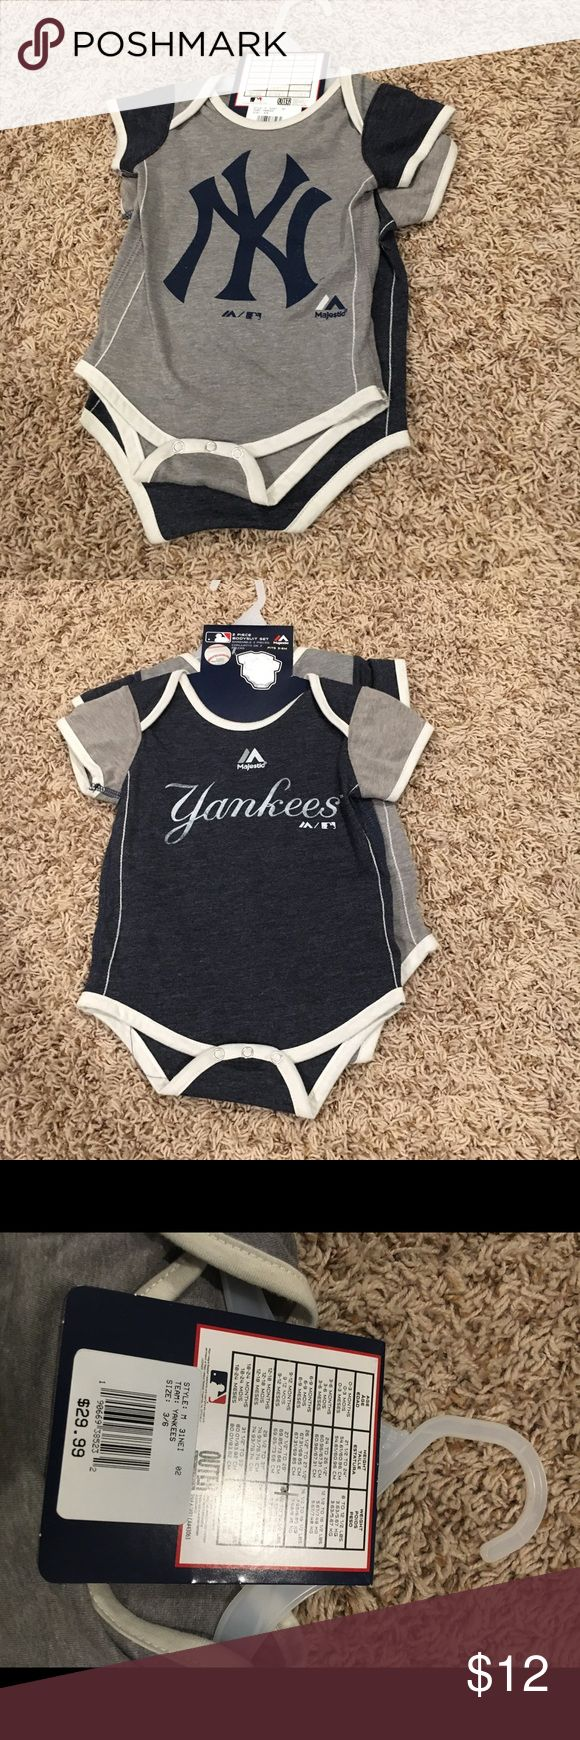 Infant Yankees team onesie set size 3-6 month Brand new with tags Yankees team onesie set size 3-6 month One Pieces Bodysuits